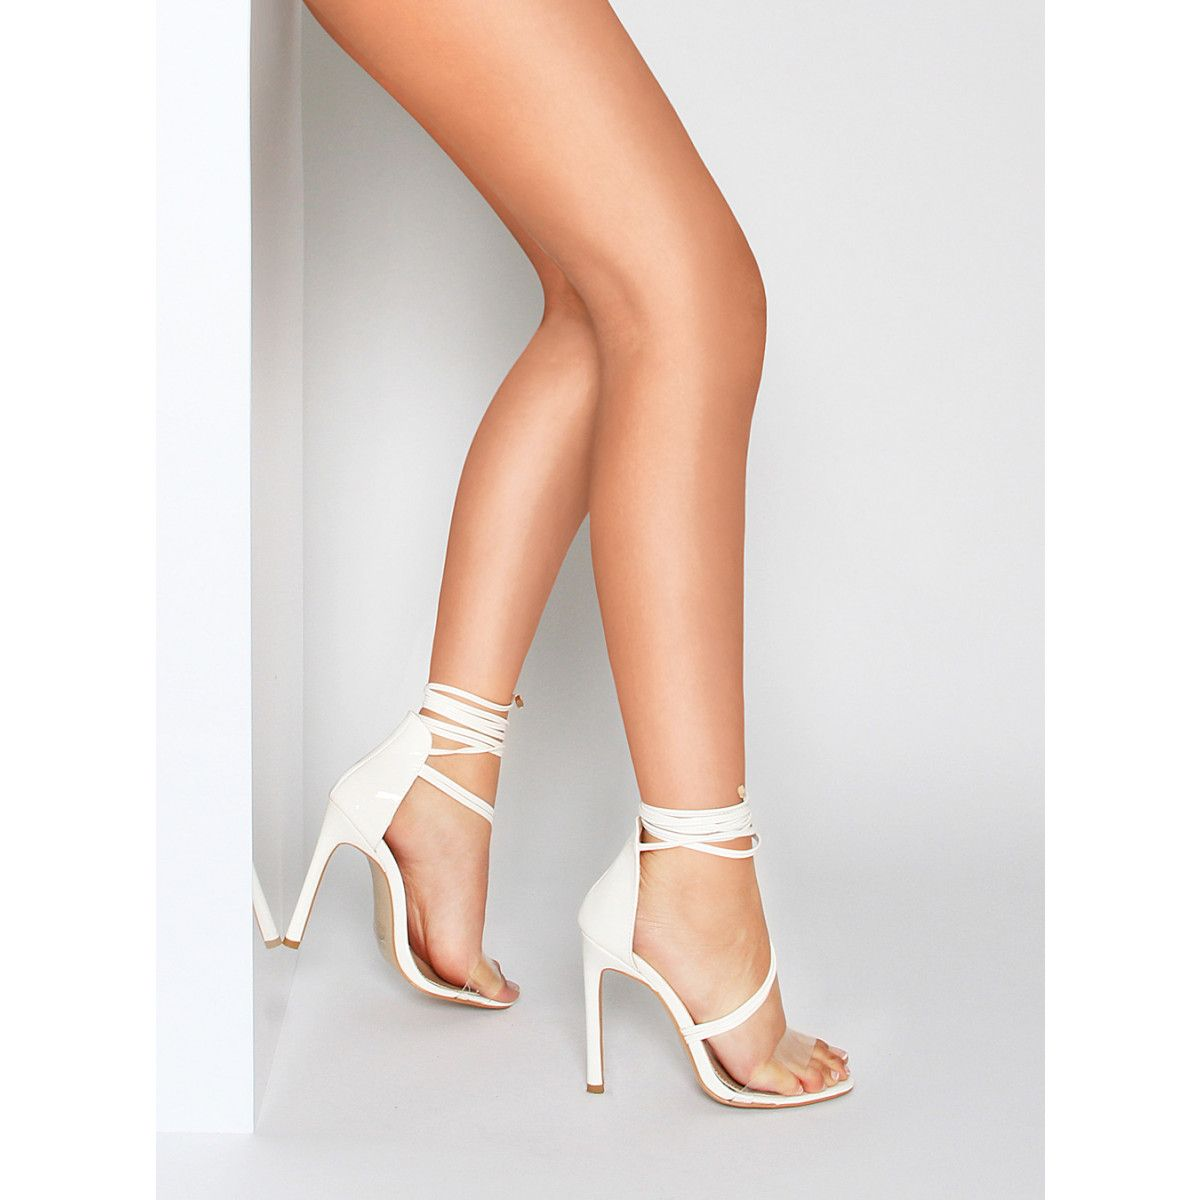 Kaira White Patent Clear Lace Up Heels : Simmi Shoes | MY SHOE ...